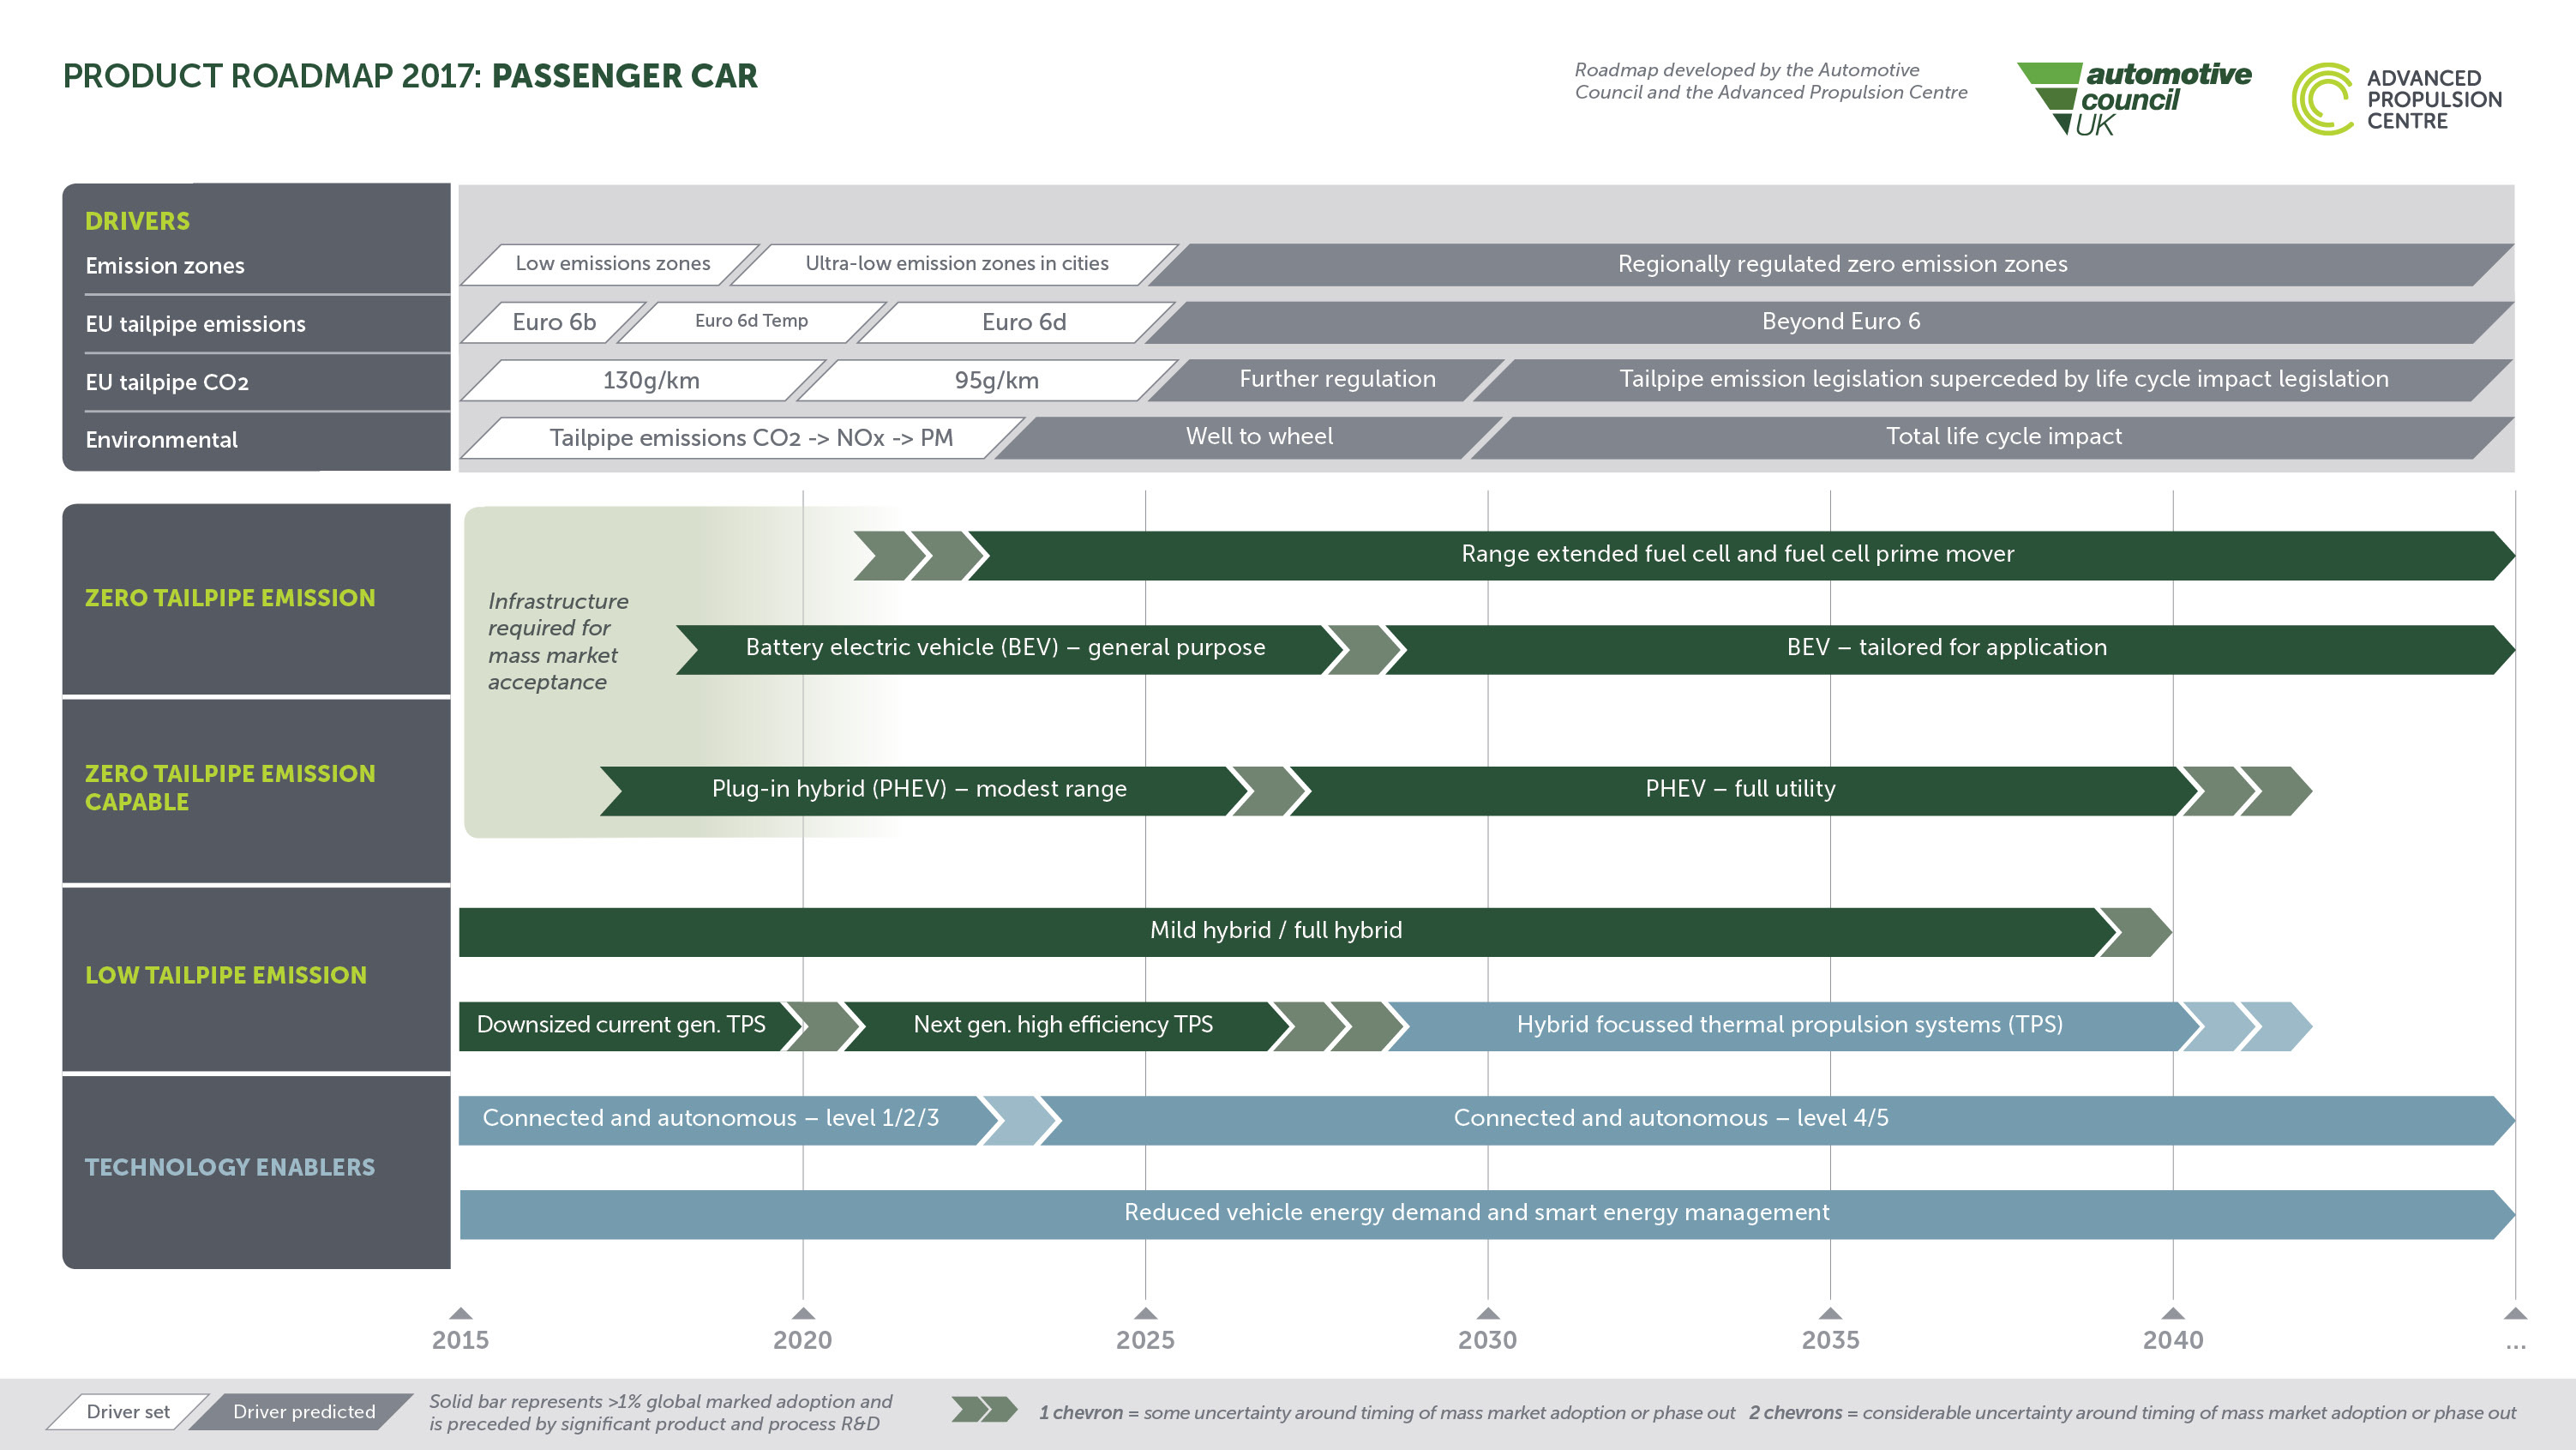 Passenger car low carbon technology roadmap (2017)